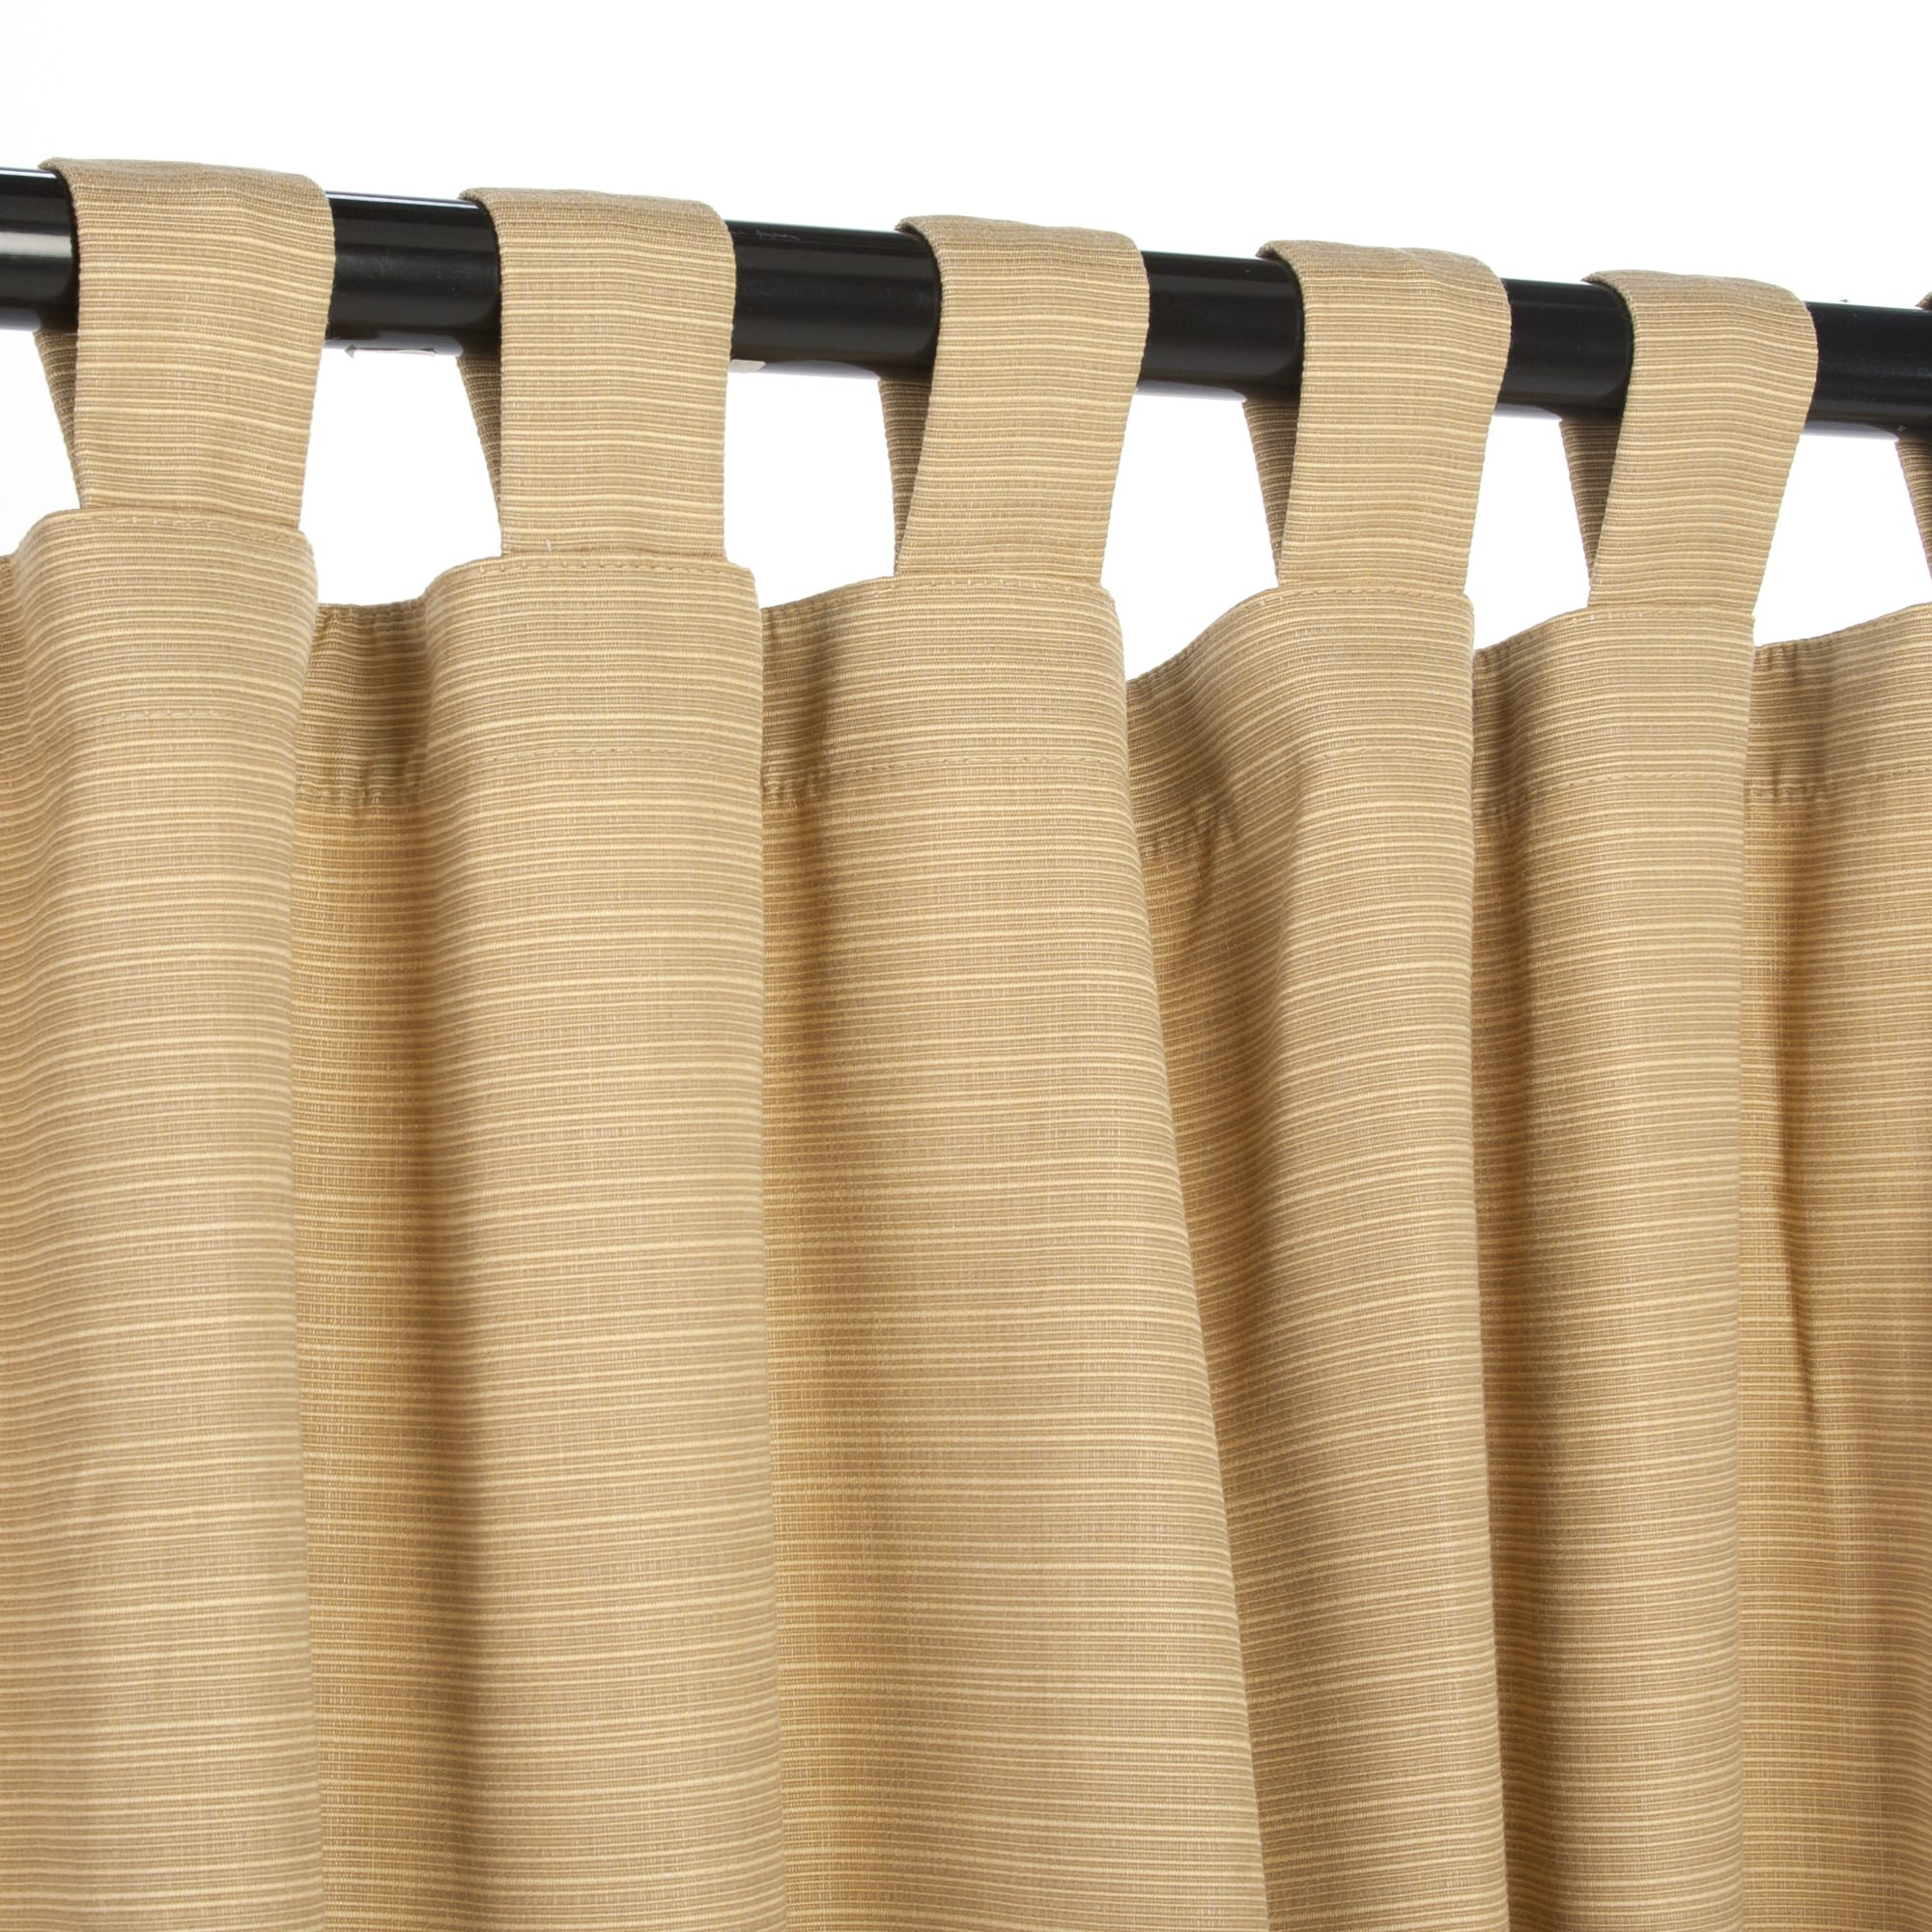 Dupione Bamboo Sunbrella Outdoor Curtain With Tabs